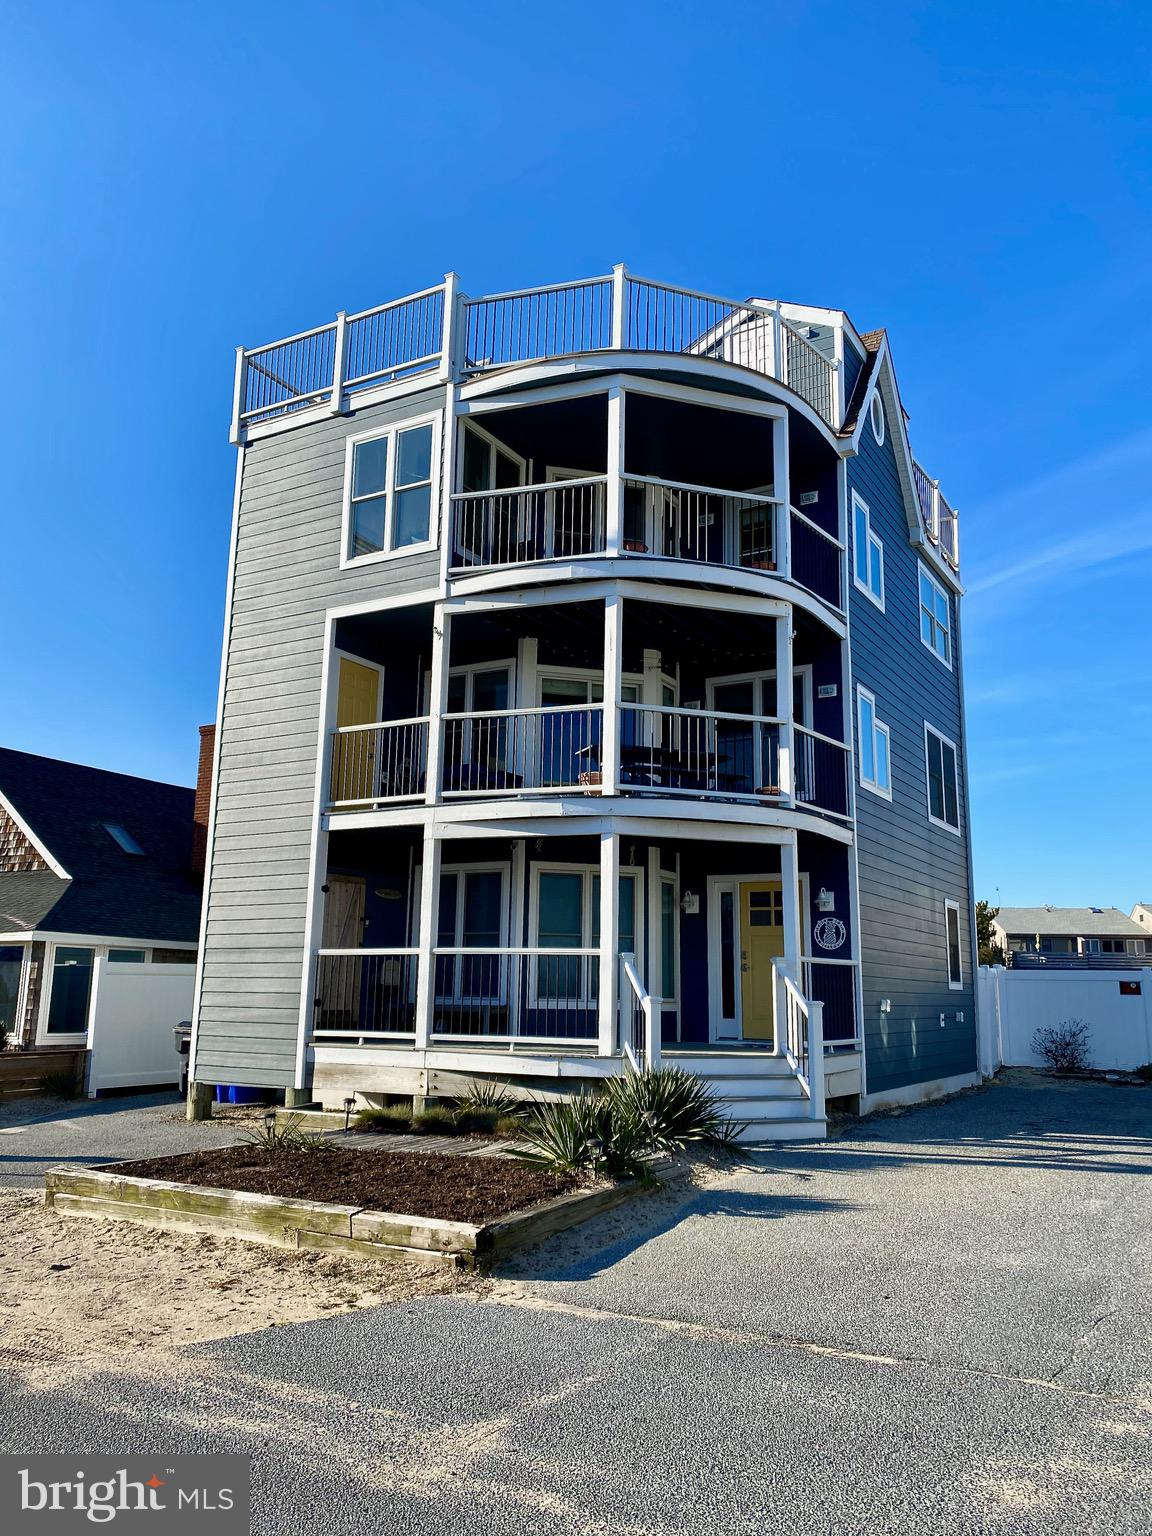 """One of the best locations in Dewey Beach! Enjoy views of the Atlantic Ocean from all four floors of this incredible property. Offering multiple decks and beach access within footsteps, this is the perfect beach home! 3 Bellevue Street is low maintenance, offers parking for seven vehicles, and is only a short walk from award winning dining and entertainment. If you want to enjoy the Dewey Beach """"A Way Of Life"""" this summer do not miss this opportunity! * New Hardiplank siding and windows in 2020 *"""